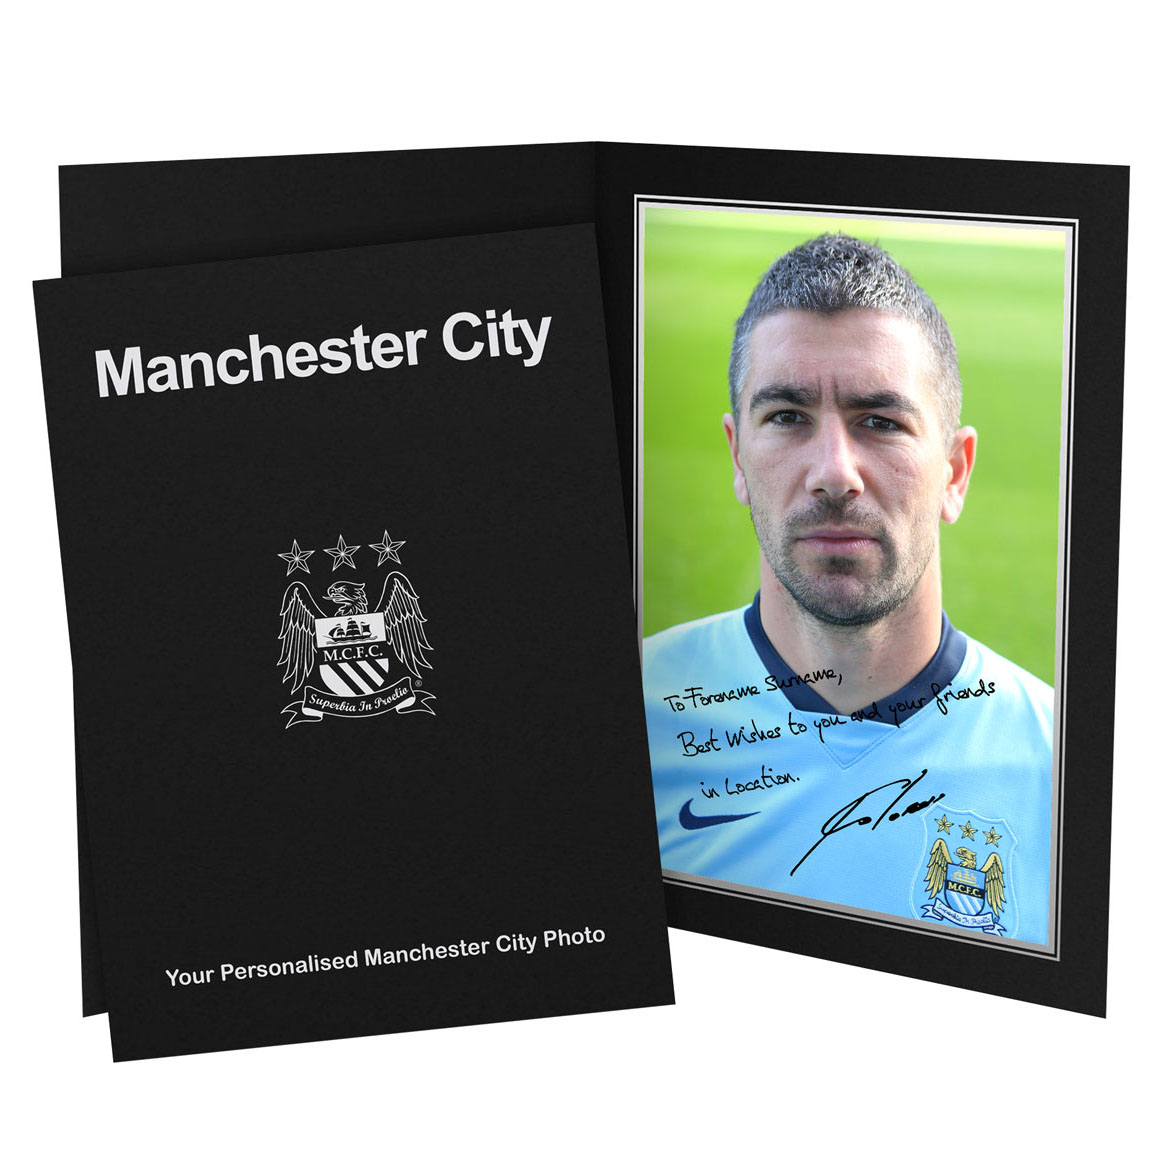 Manchester City Personalised Signature Photo in Presentation Folder - Kolarov